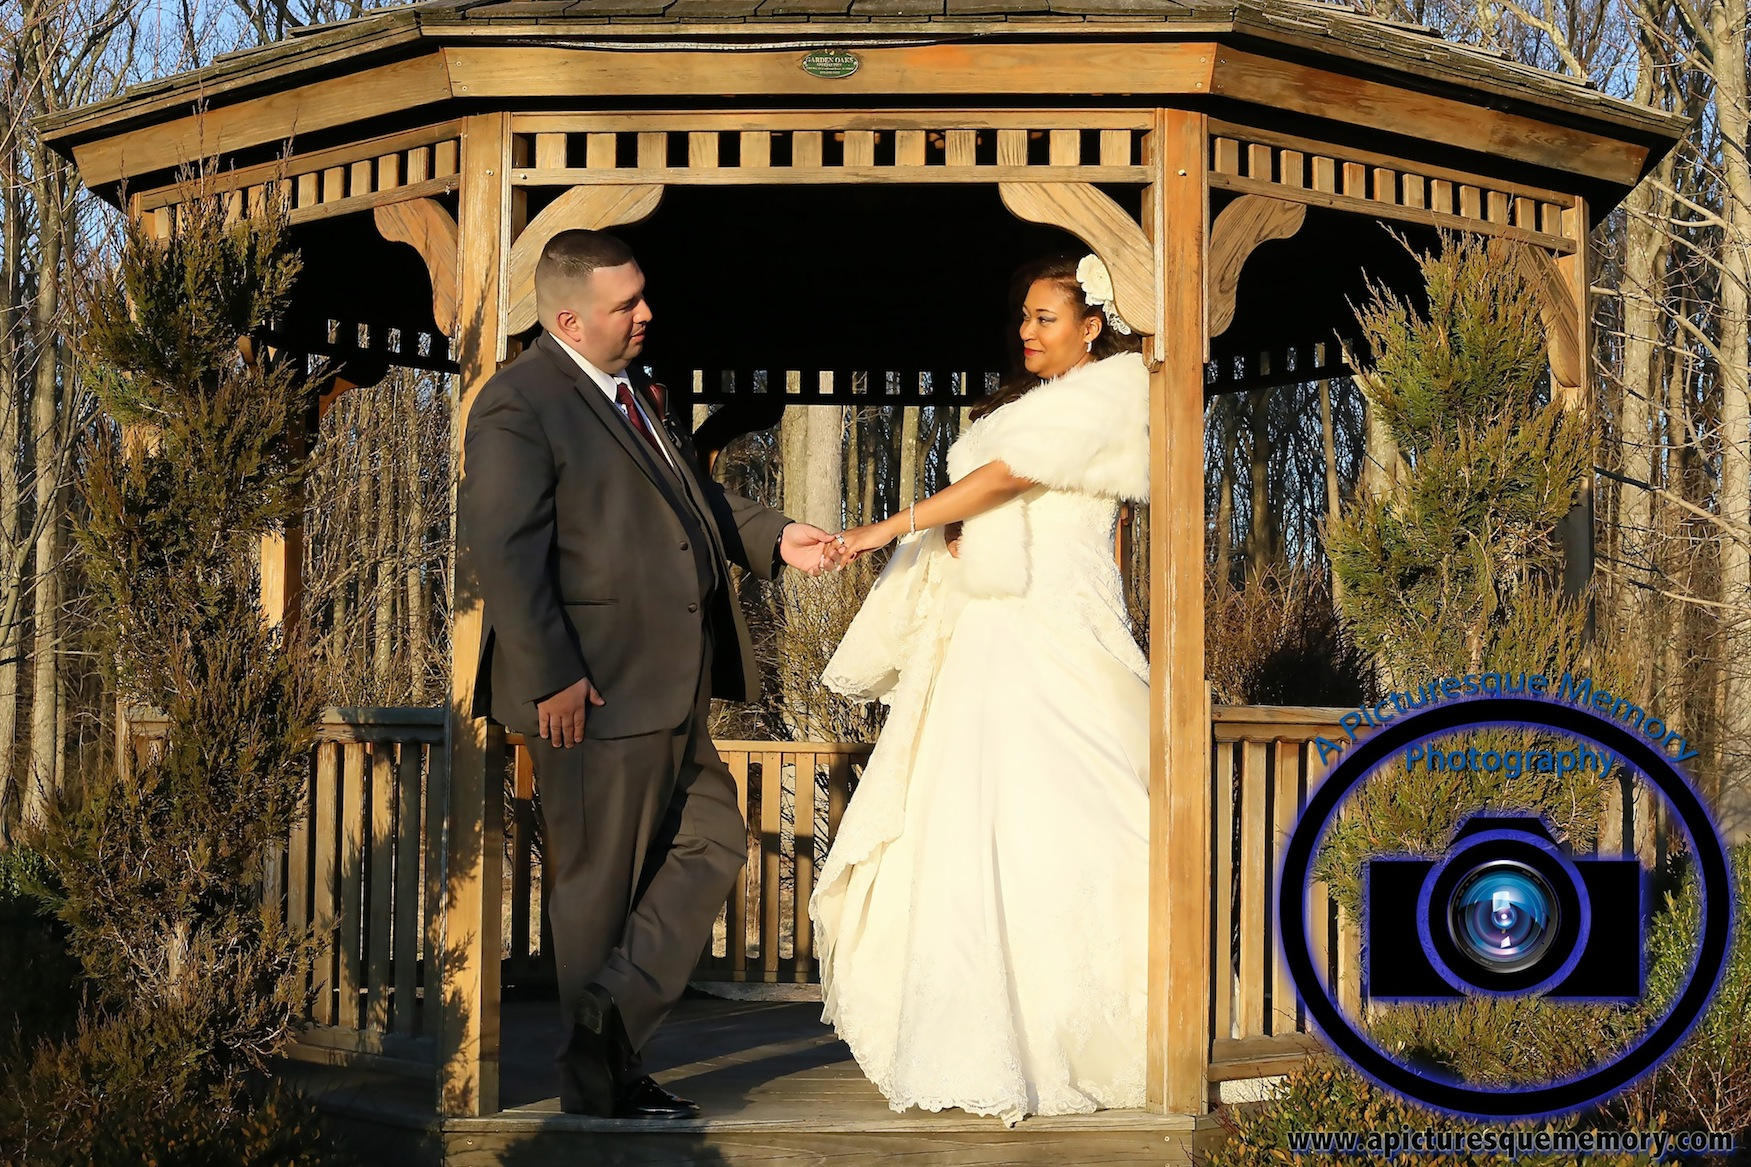 #njwedding, #njweddingphotography, #southbrunswickweddingphotographer#weddingphotos, #apicturesquememoryphotography, #pierresofsouthbrunswickweddingphotographer, #brideandgroom, #gazeebo